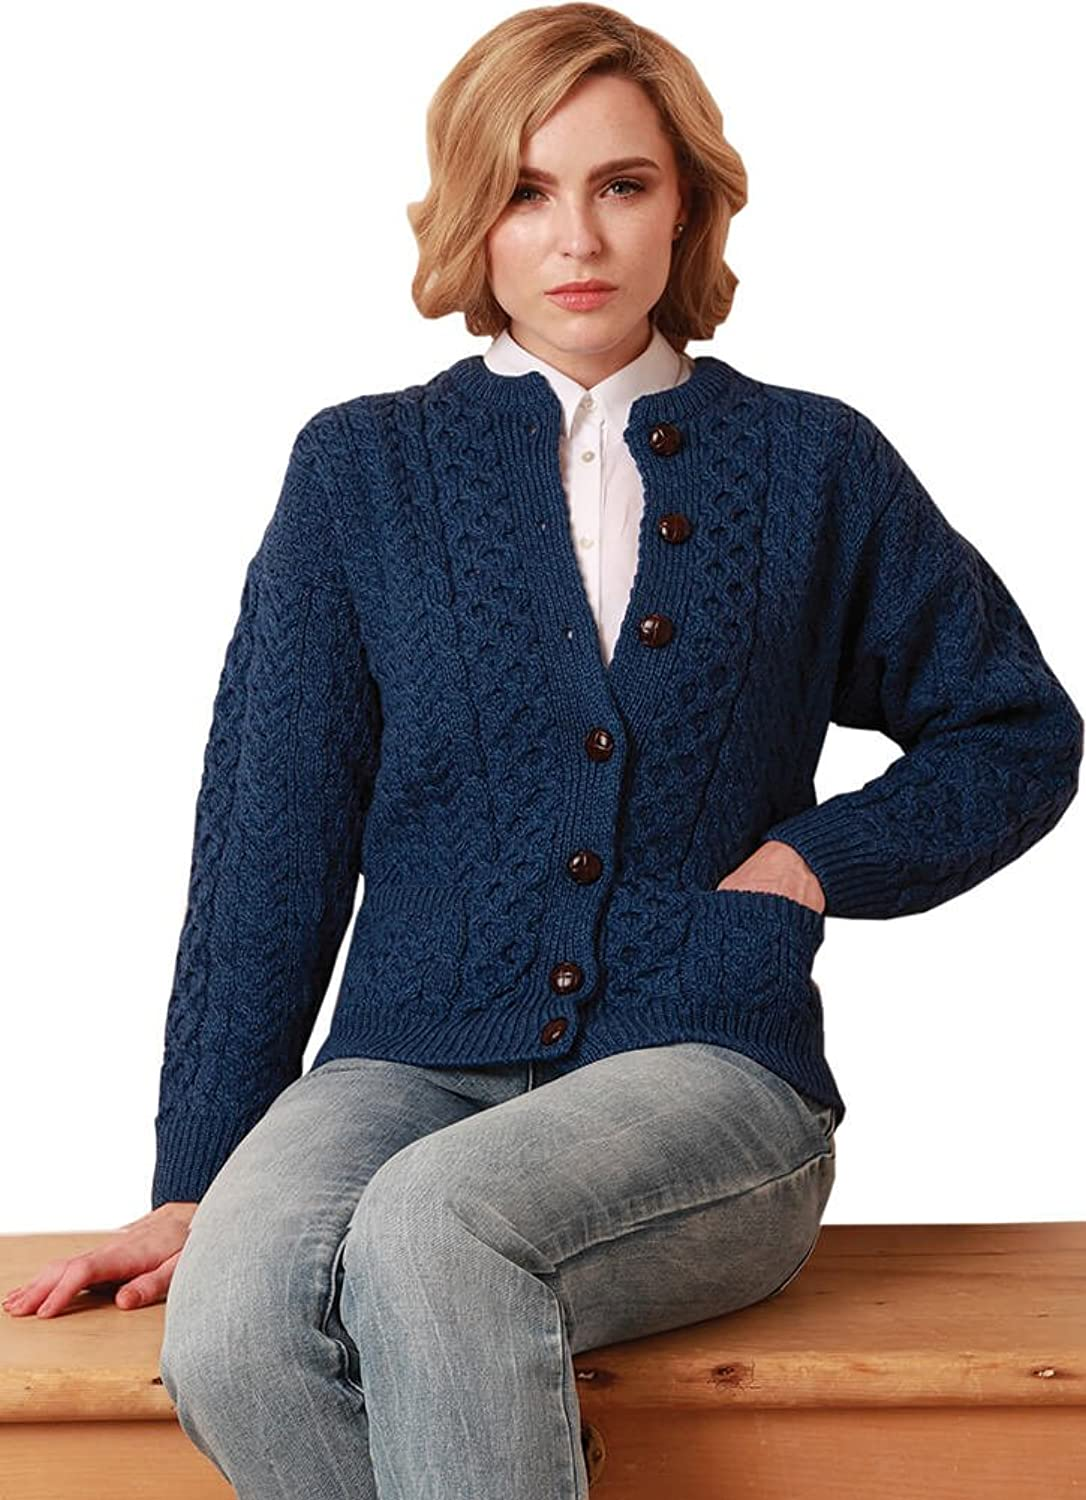 Ladies Colorful 1920s Sweaters and Cardigans History Ladies Wool Cardigan Sweater Imported from Ireland 100% Irish Wool Blue $90.95 AT vintagedancer.com